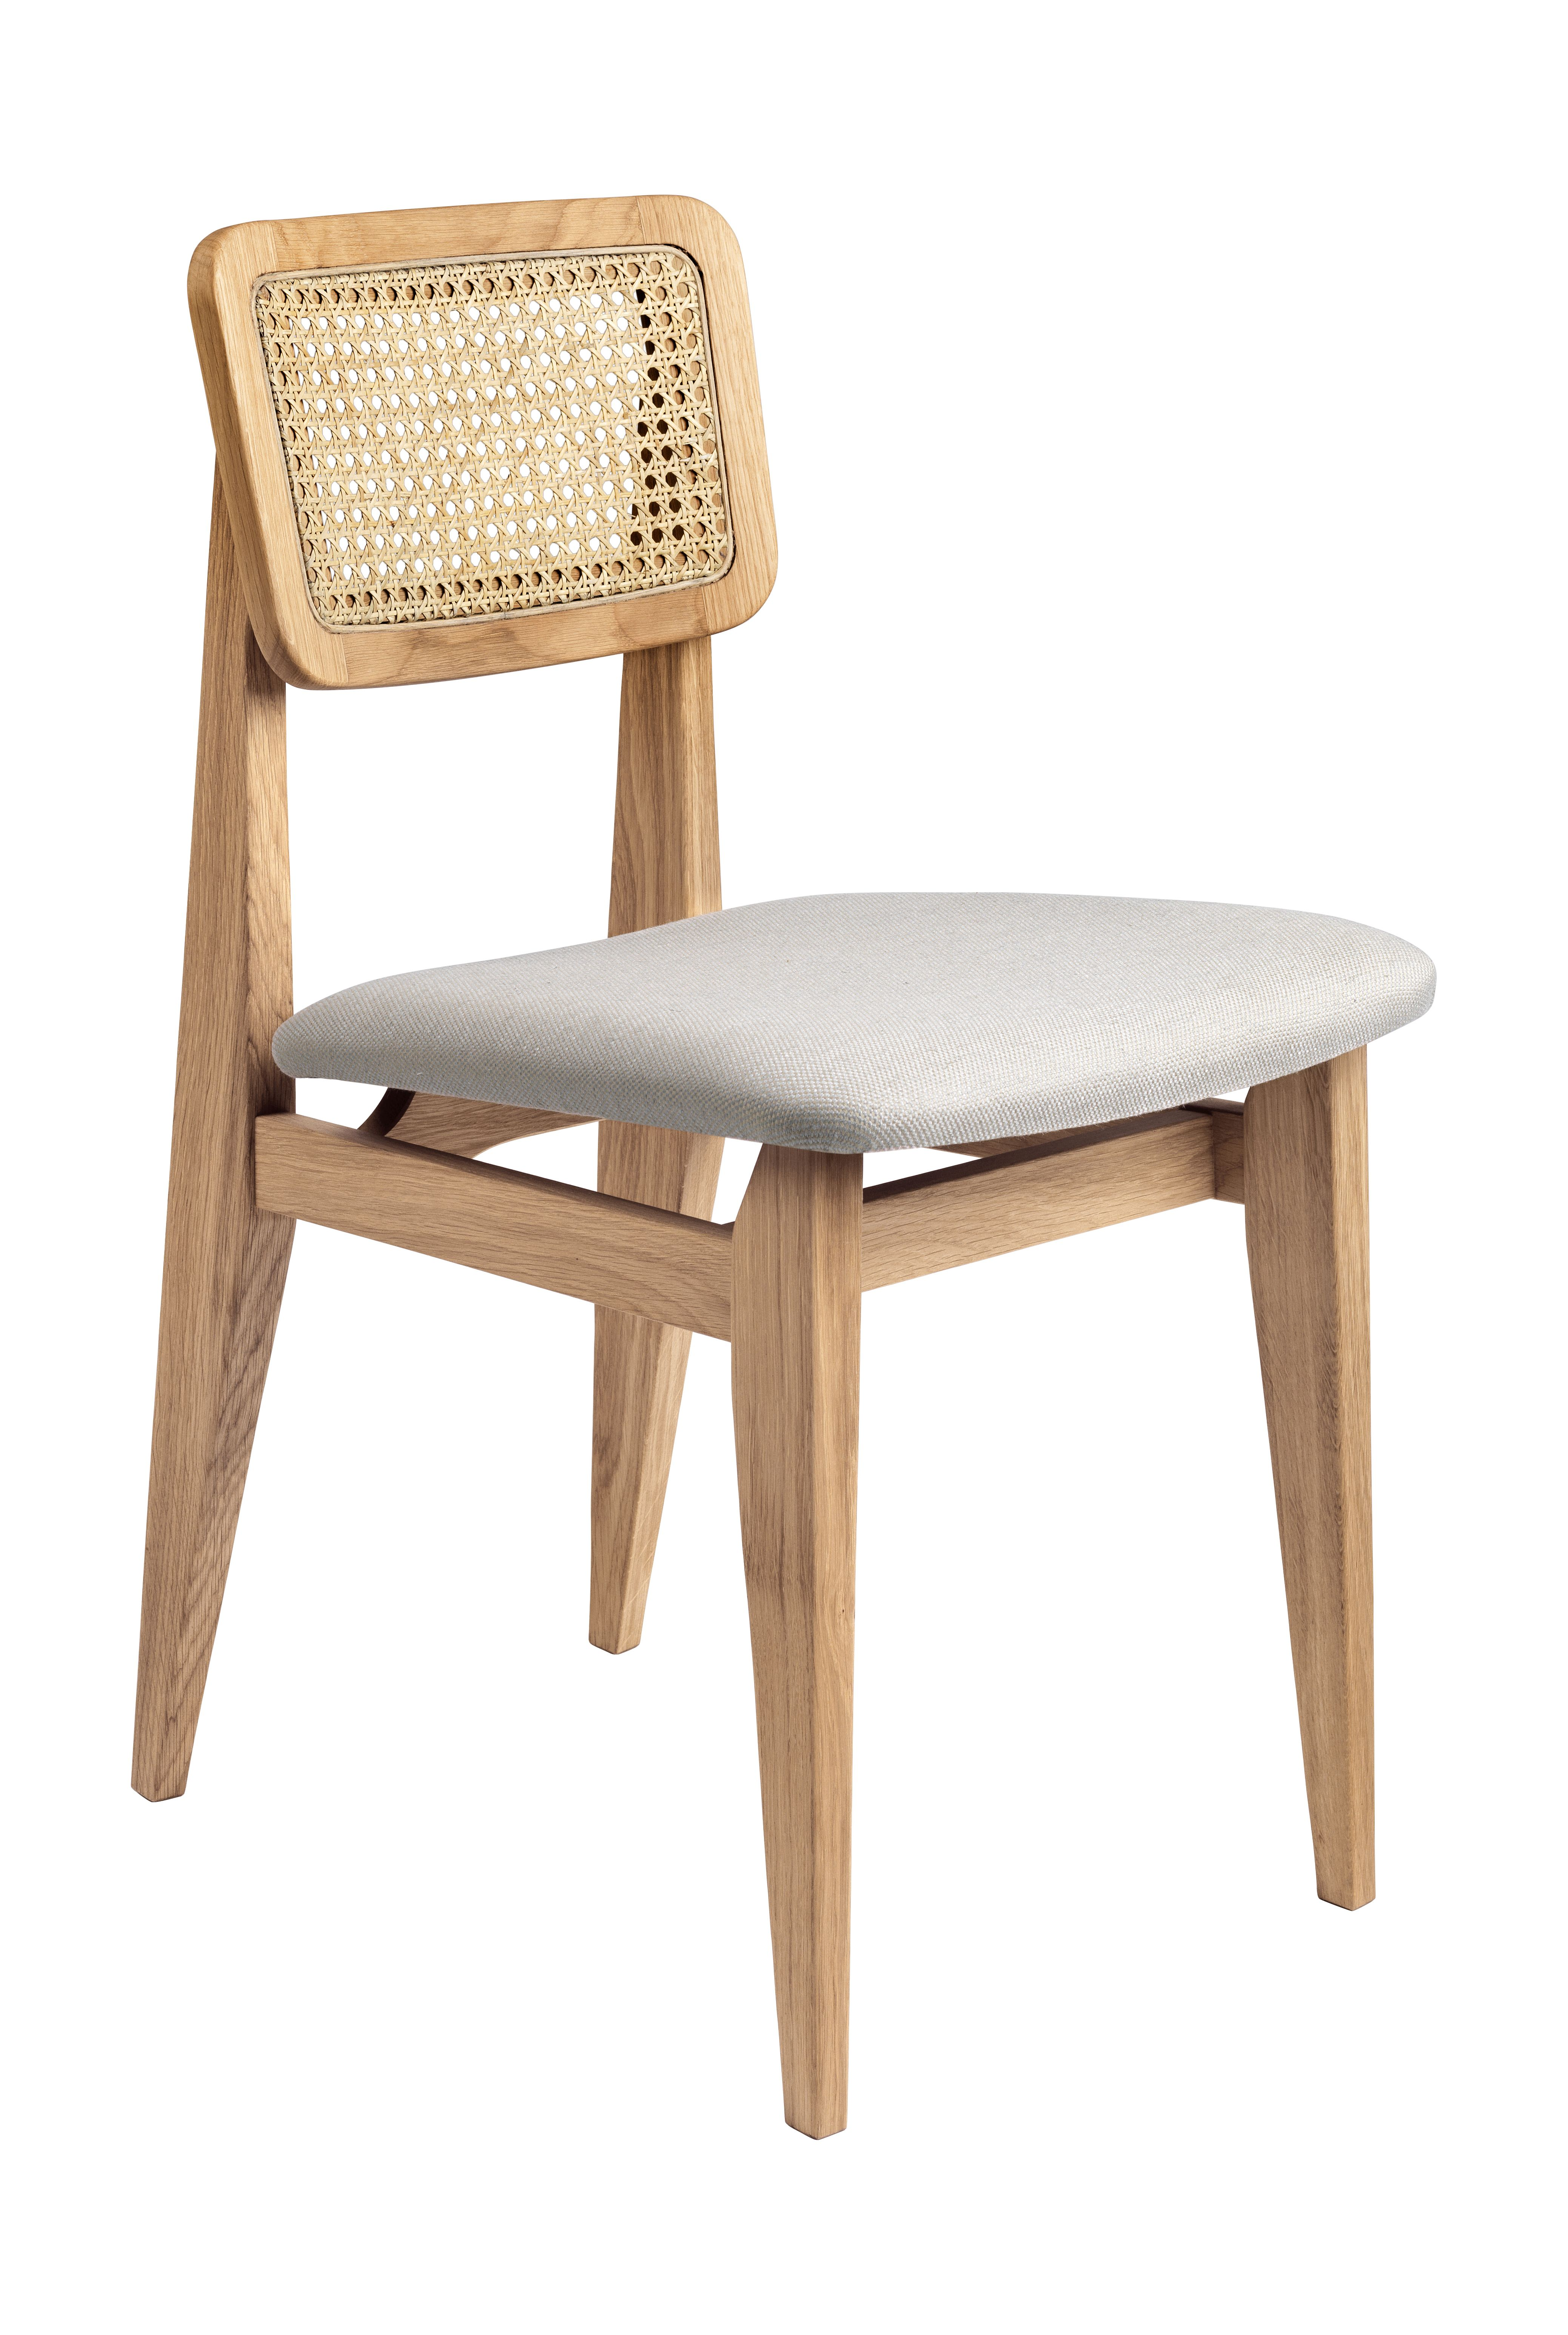 Gubi C Chair Dining Chair Seat Upholstered French Cane By